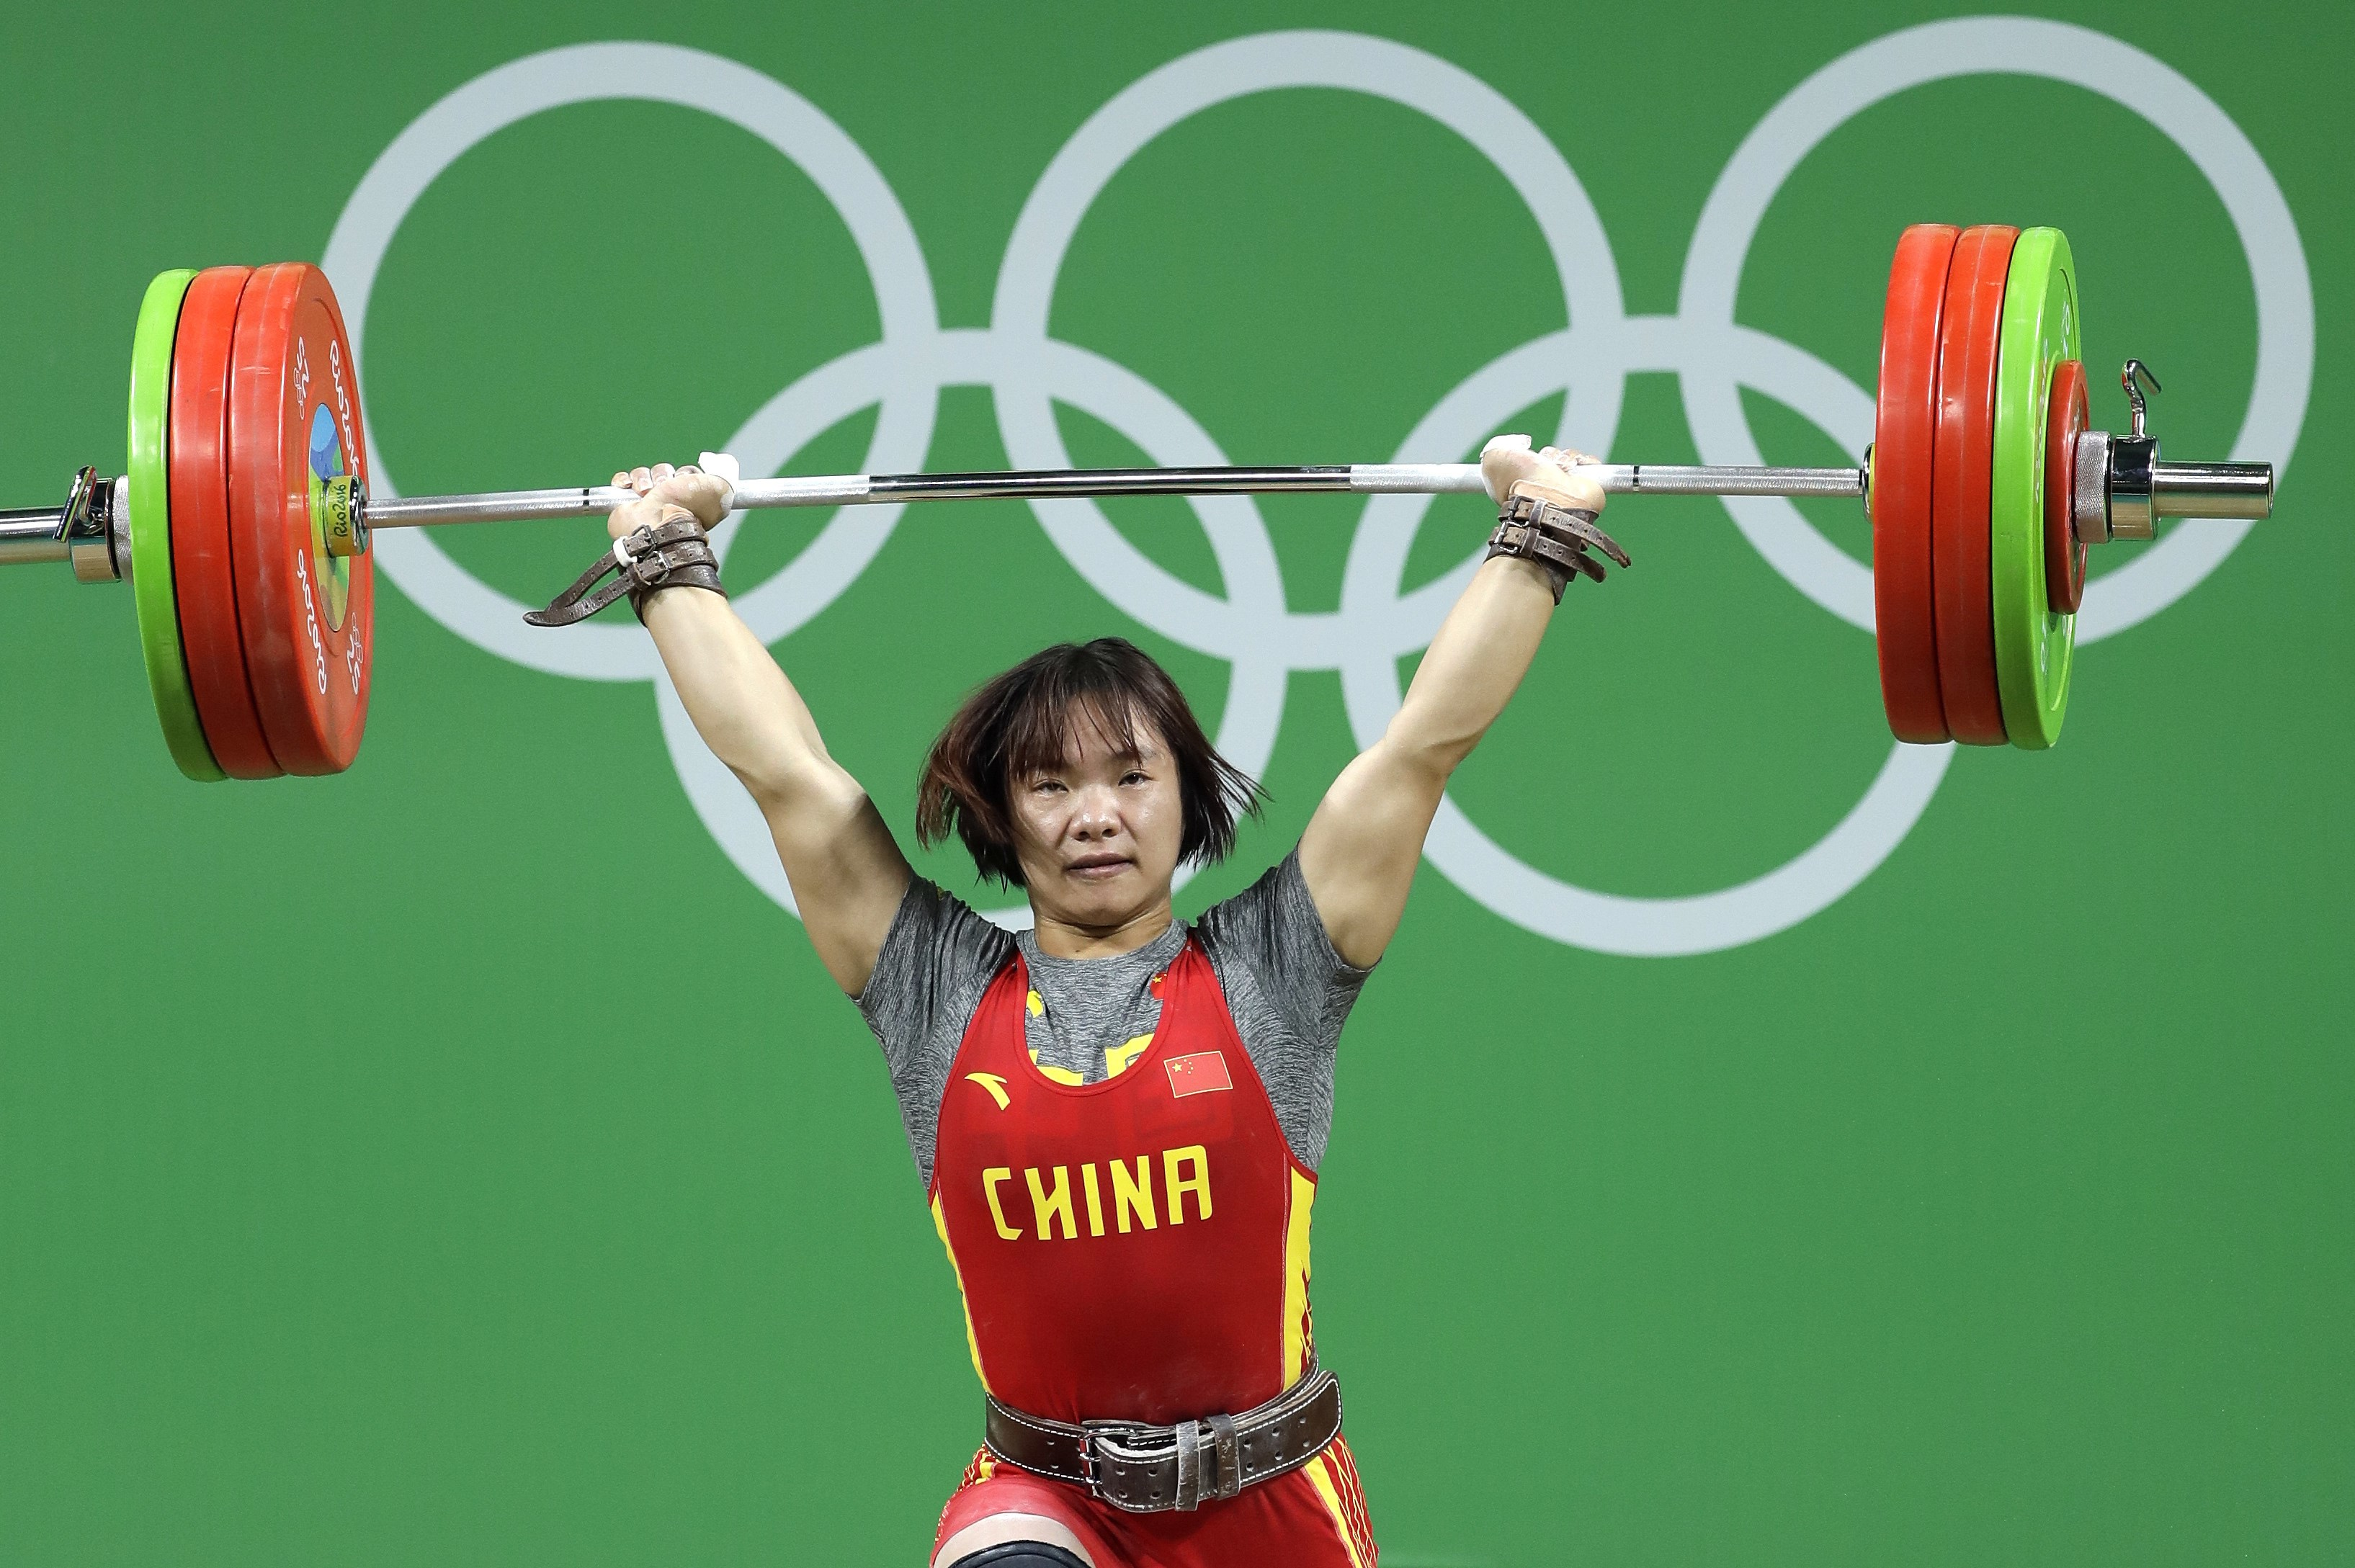 Xiang Yanmei, of China, competes in the women's 69kg weightlifting competition at the 2016 Summer Olympics in Rio de Janeiro, Brazil, Wednesday, Aug. 10, 2016. (AP Photo/Mike Groll)